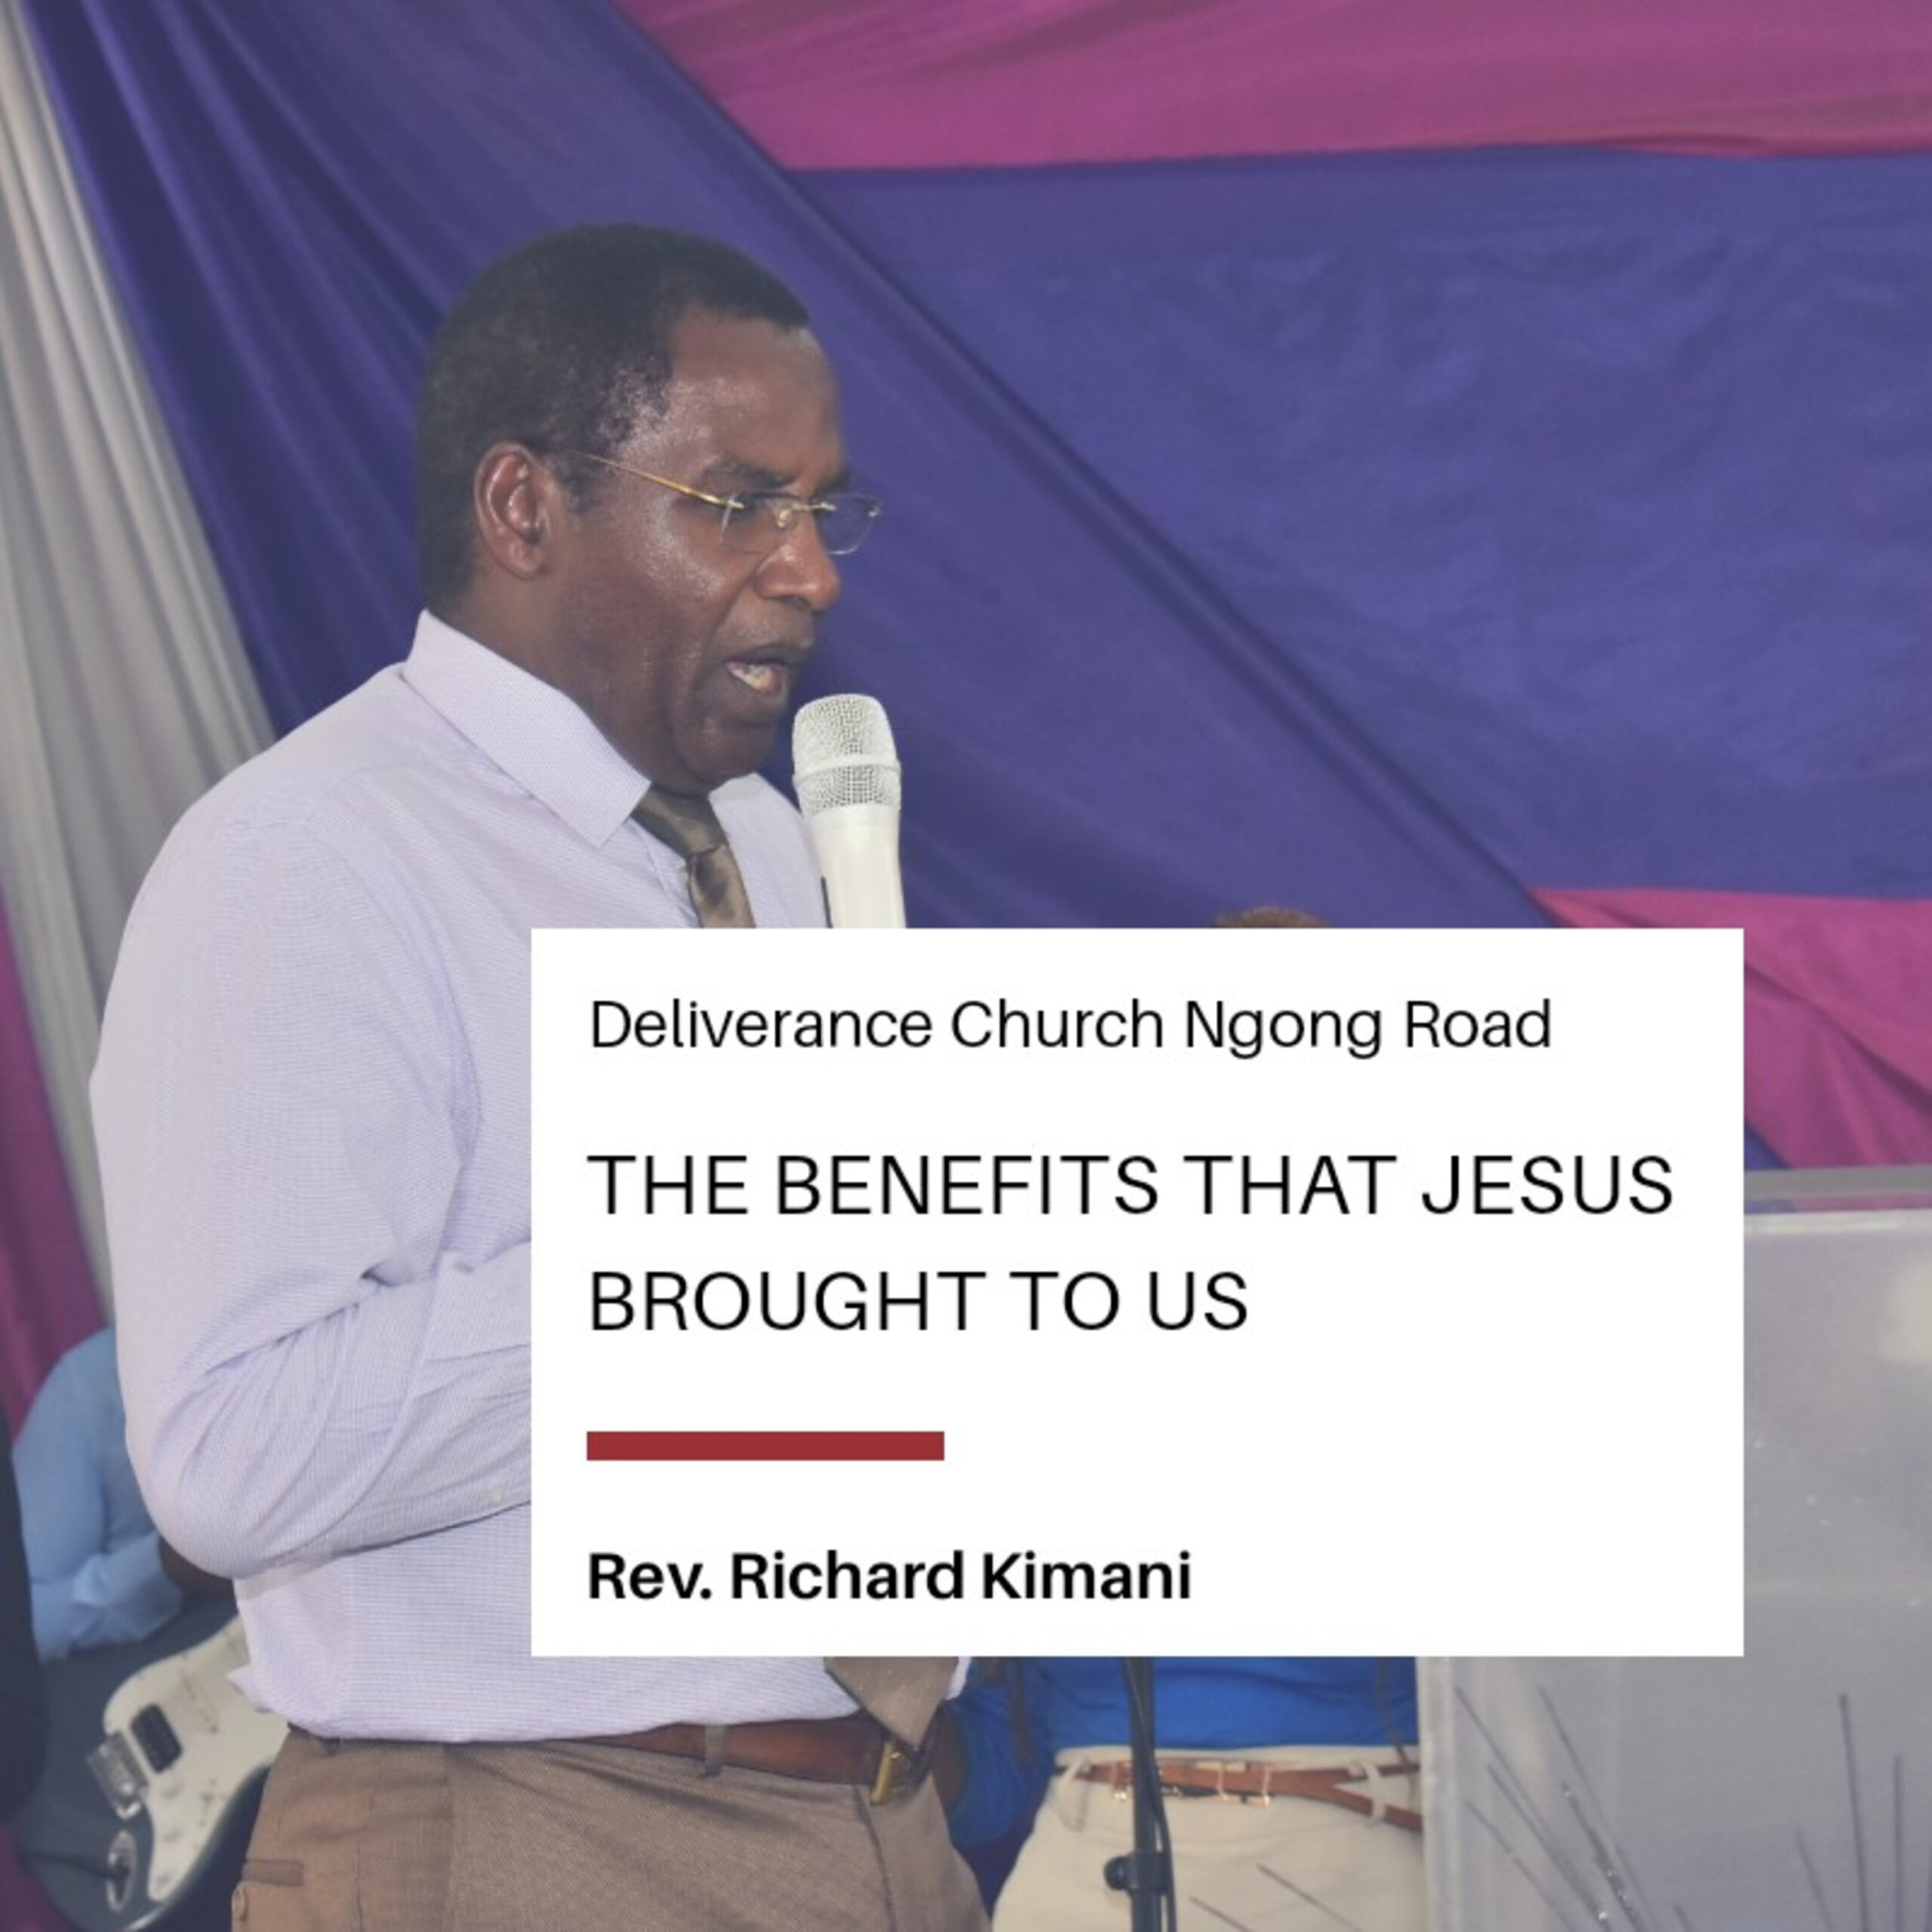 The Benefits that Jesus Brought to Us